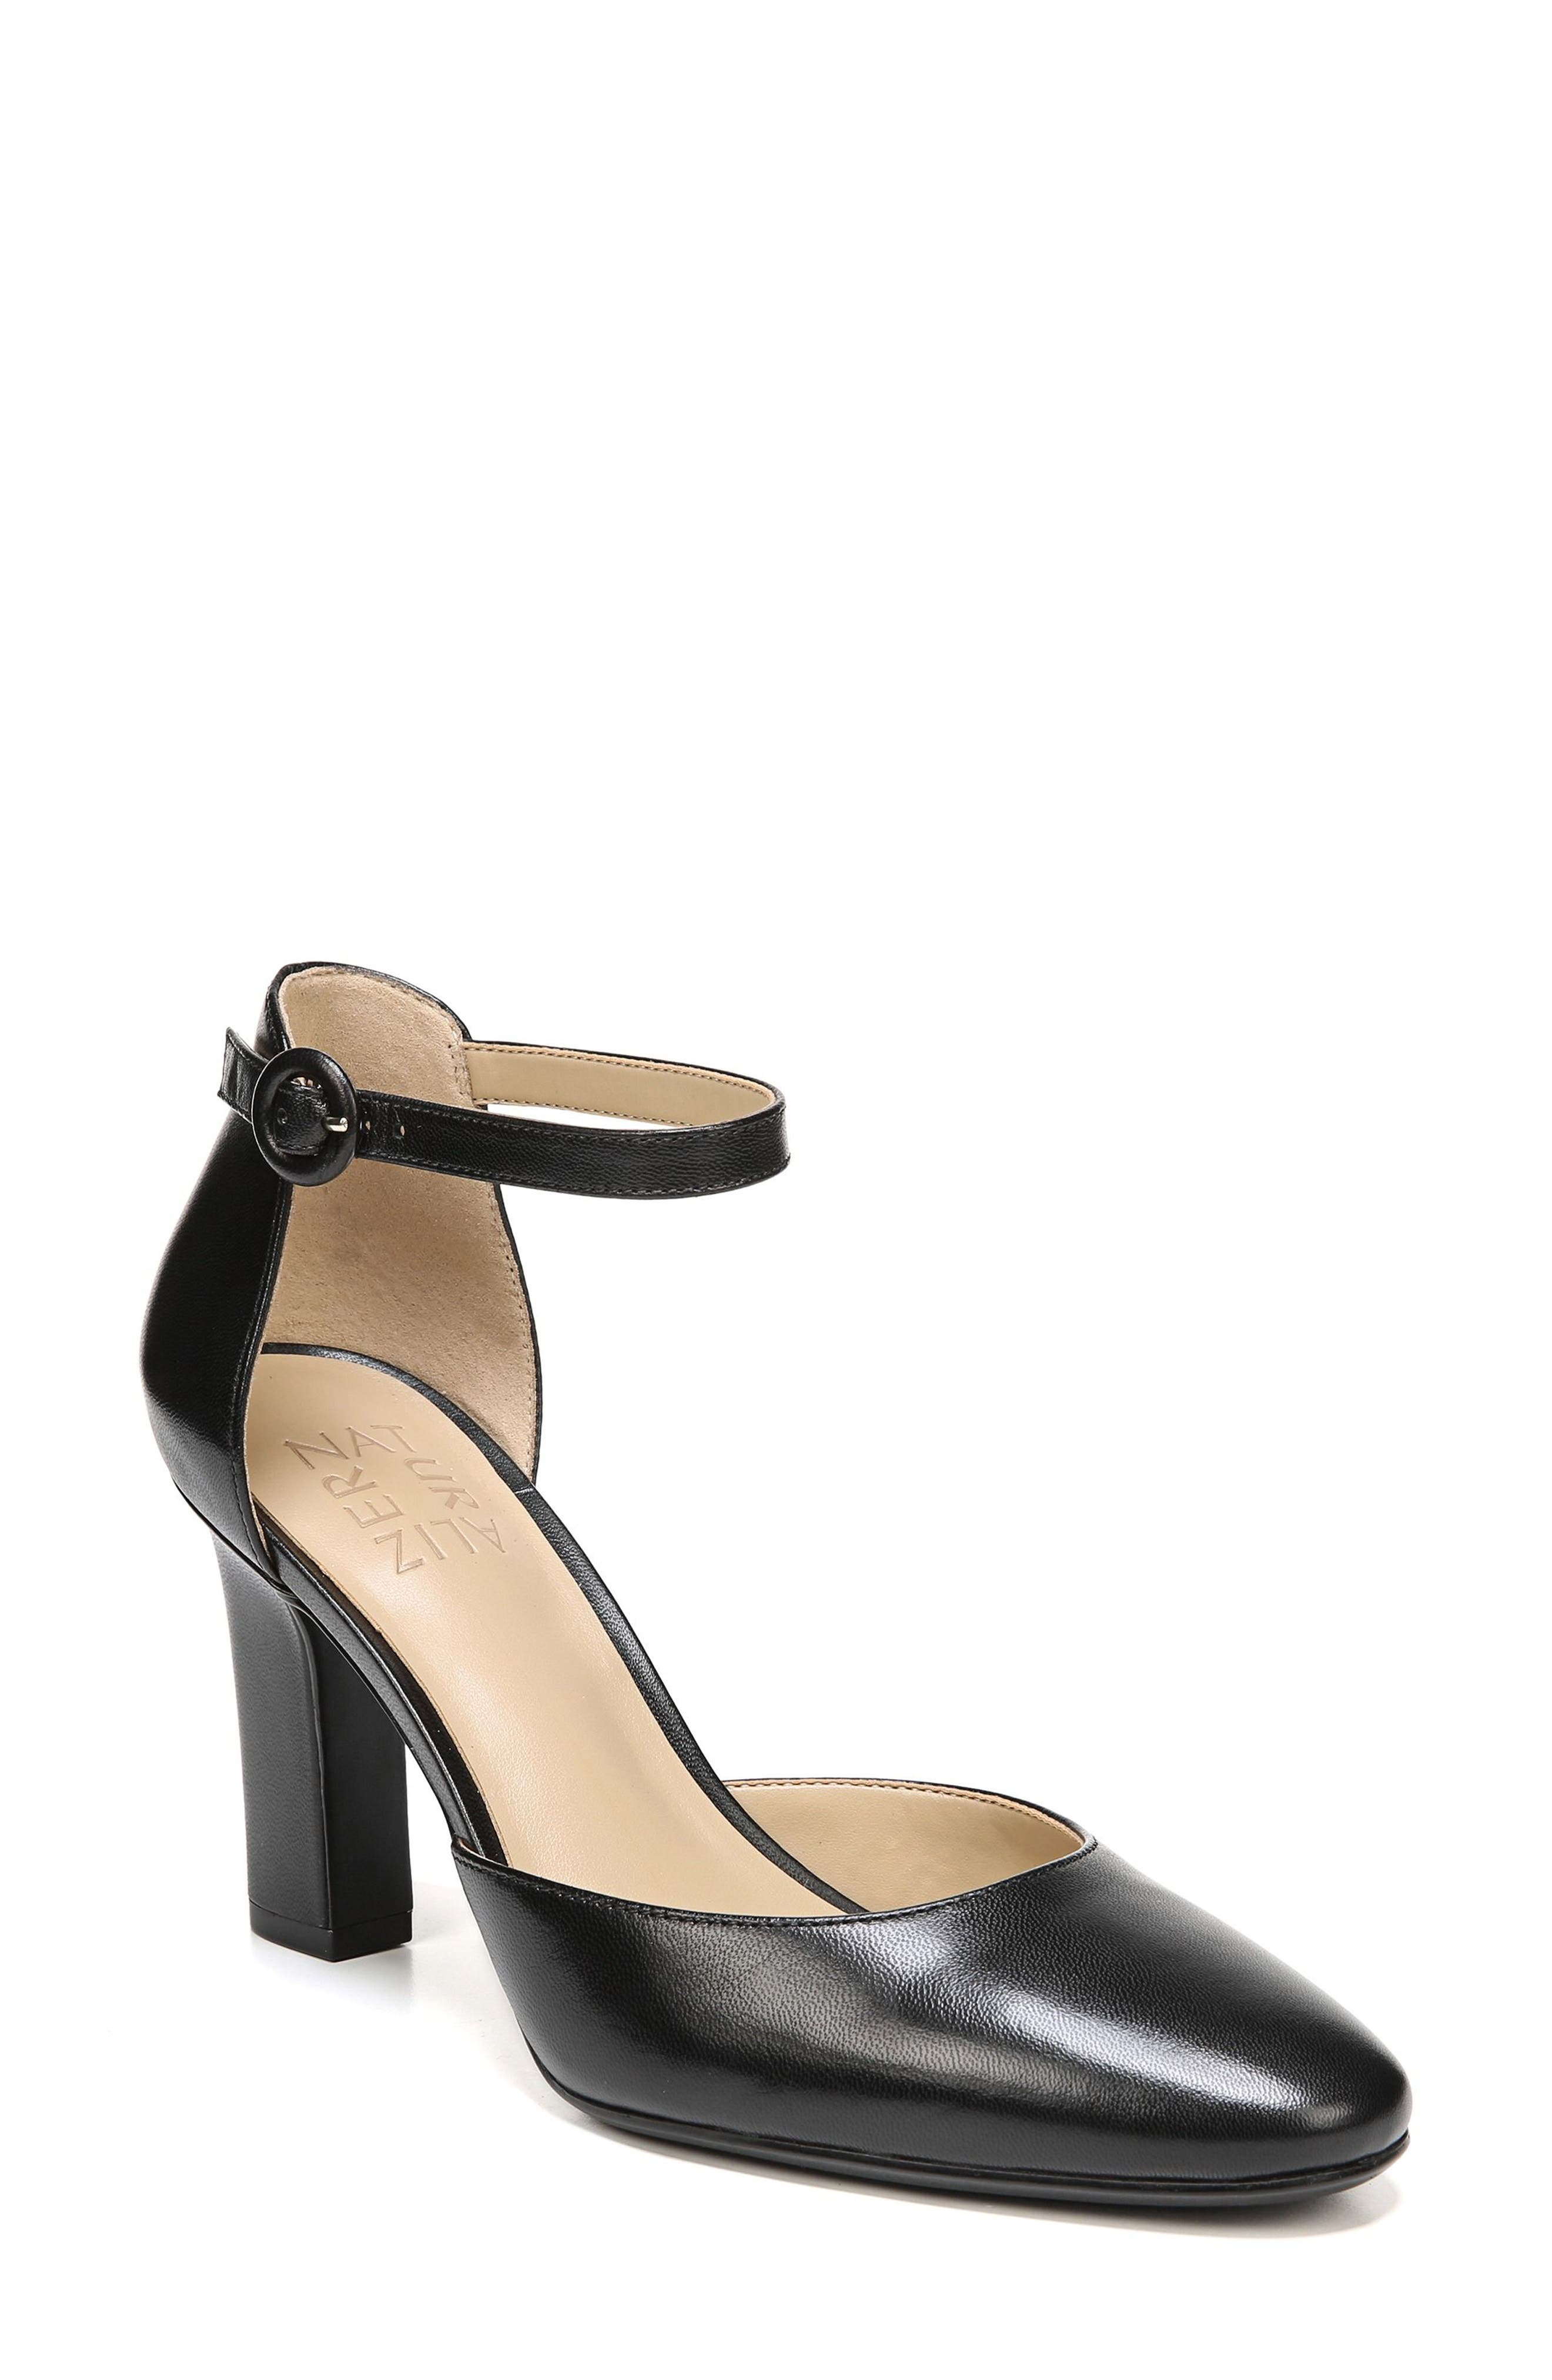 Gianna Ankle Strap Pump,                         Main,                         color, BLACK LEATHER